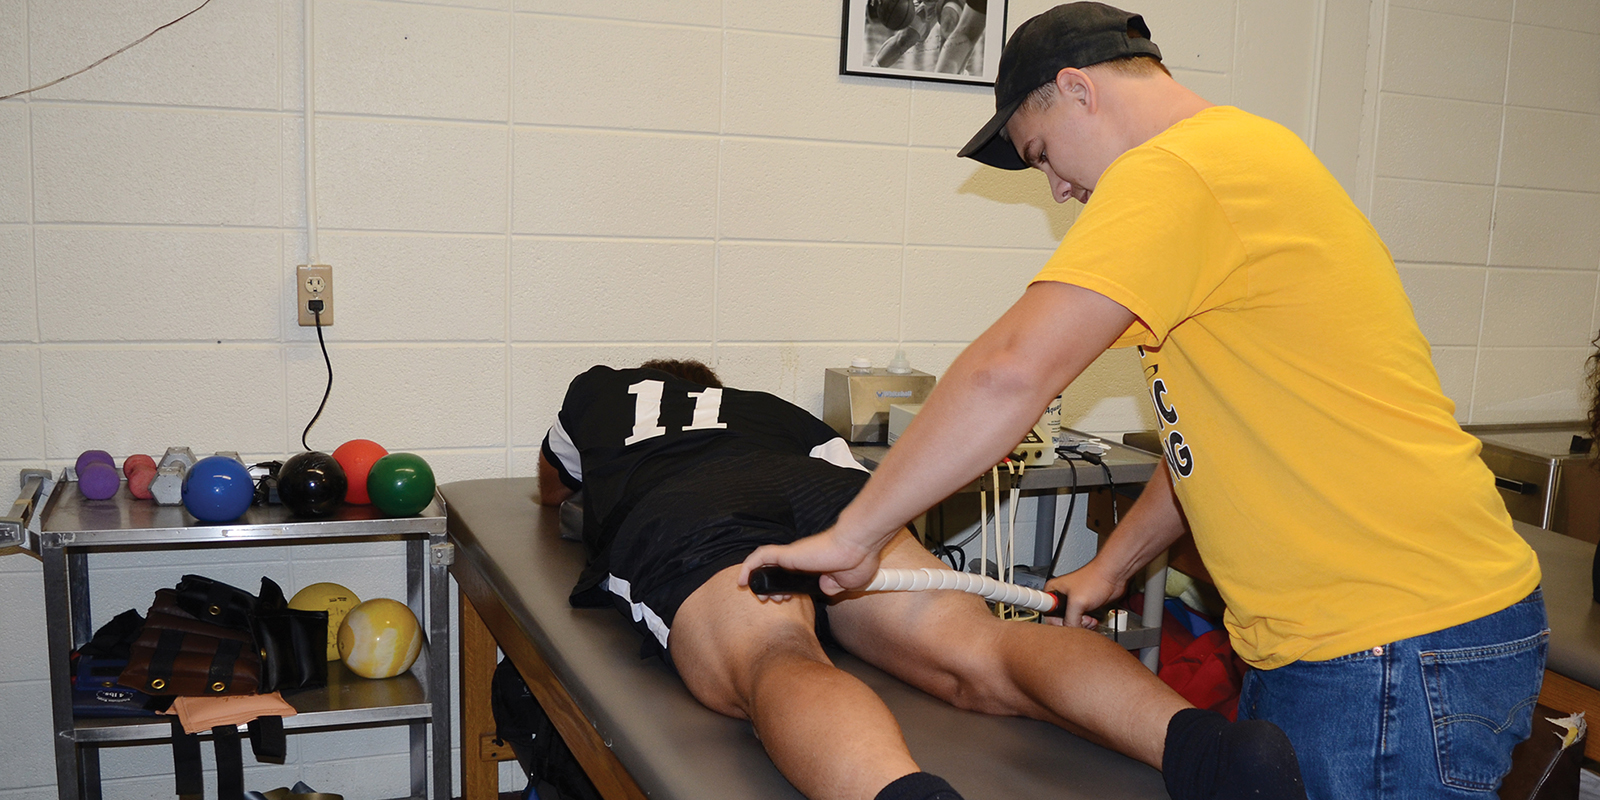 A student athletic trainer treating an athlete.